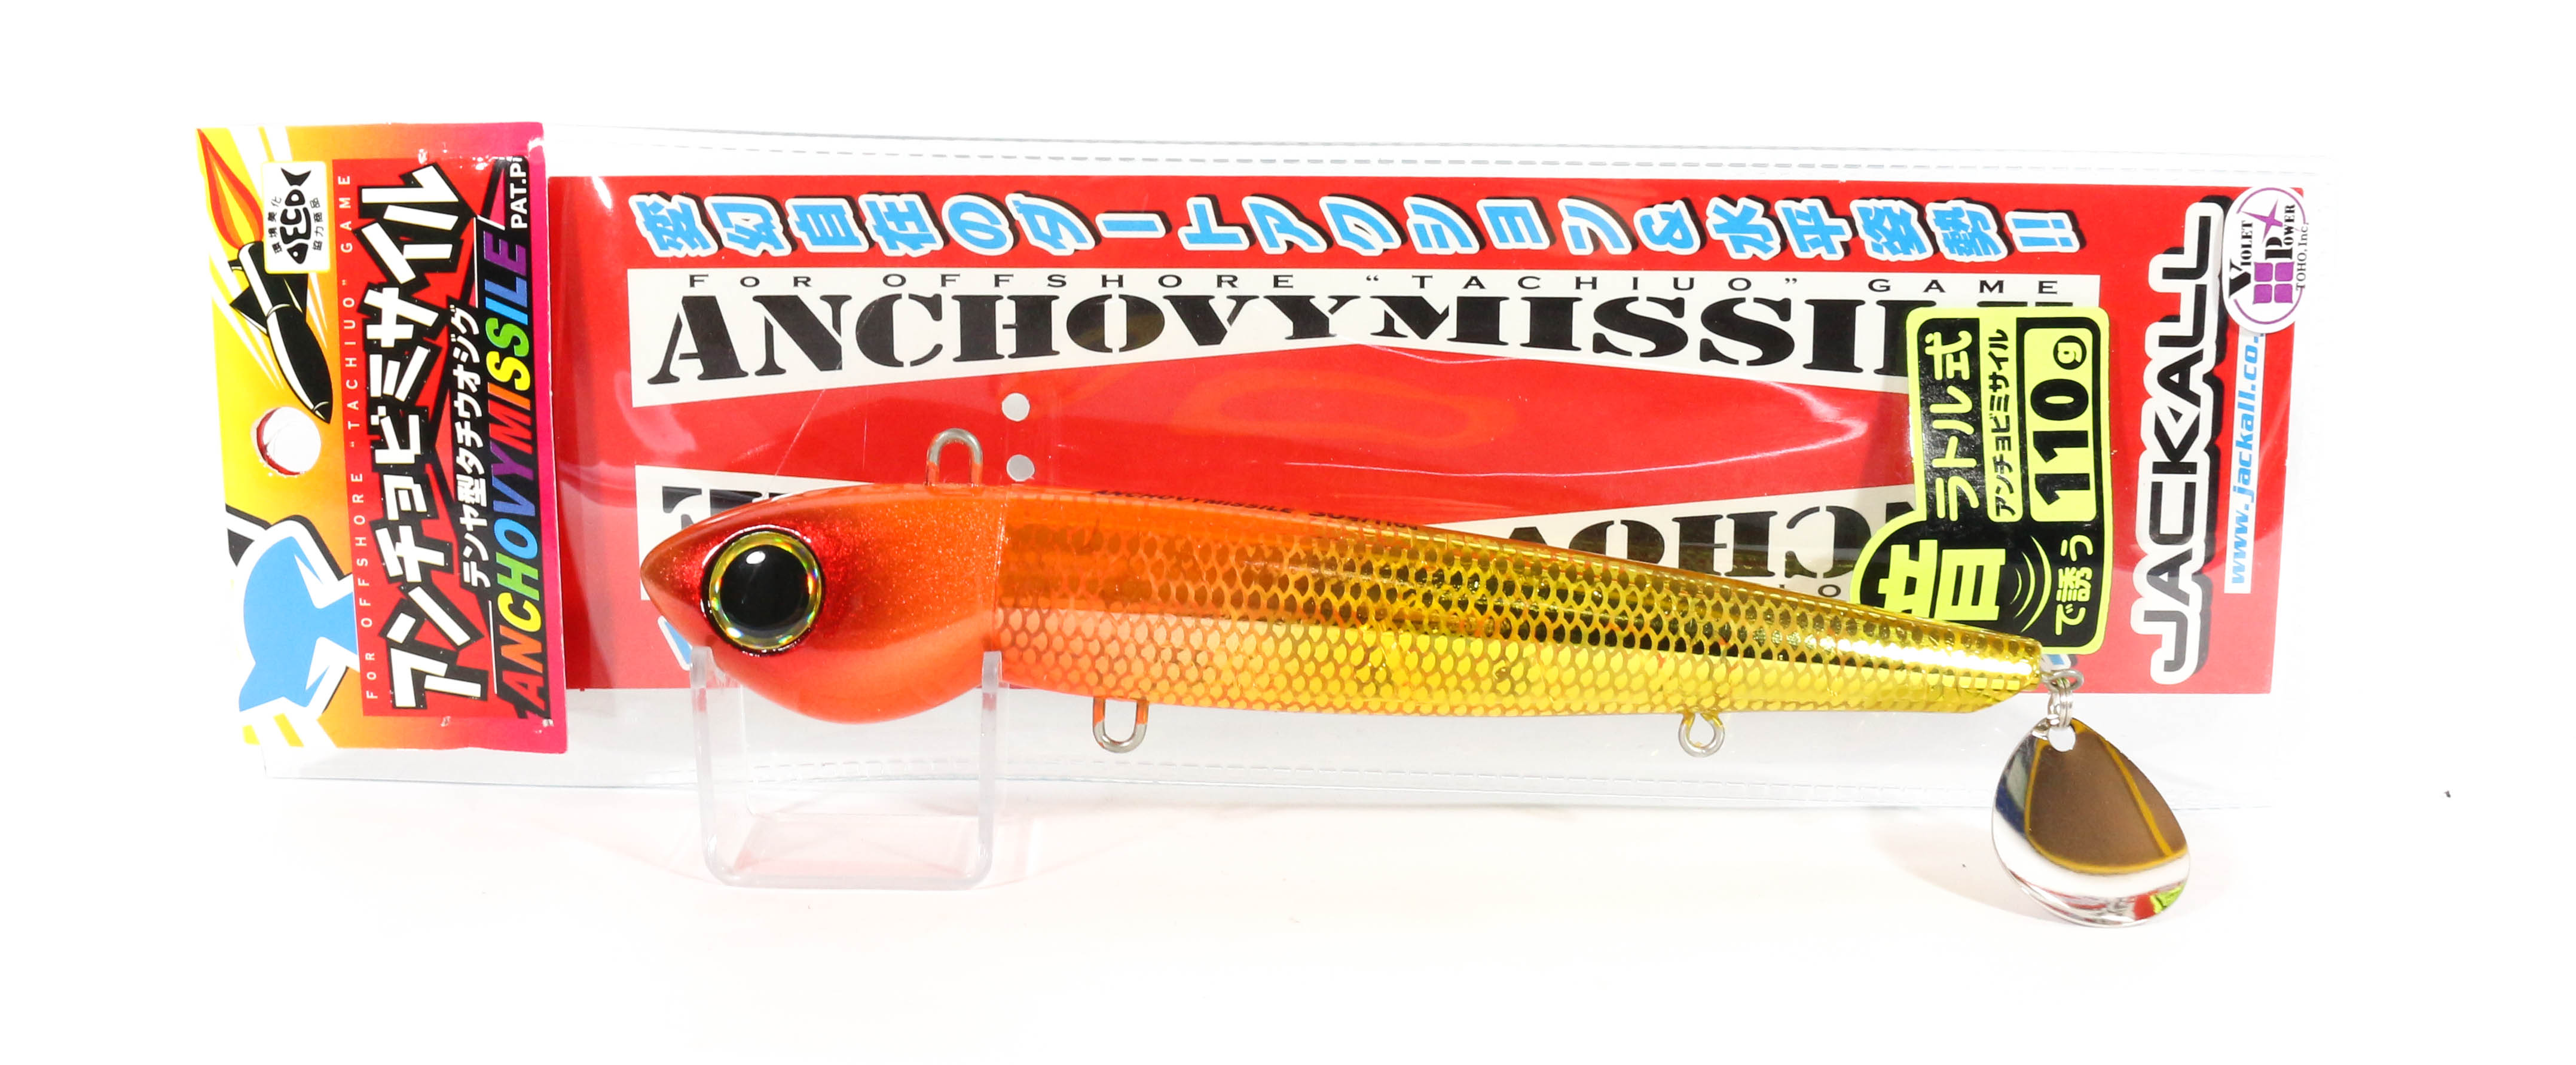 Jackall Anchovy Missile RattleShiki Jig Lure 150 grams Orange Gold (5320)